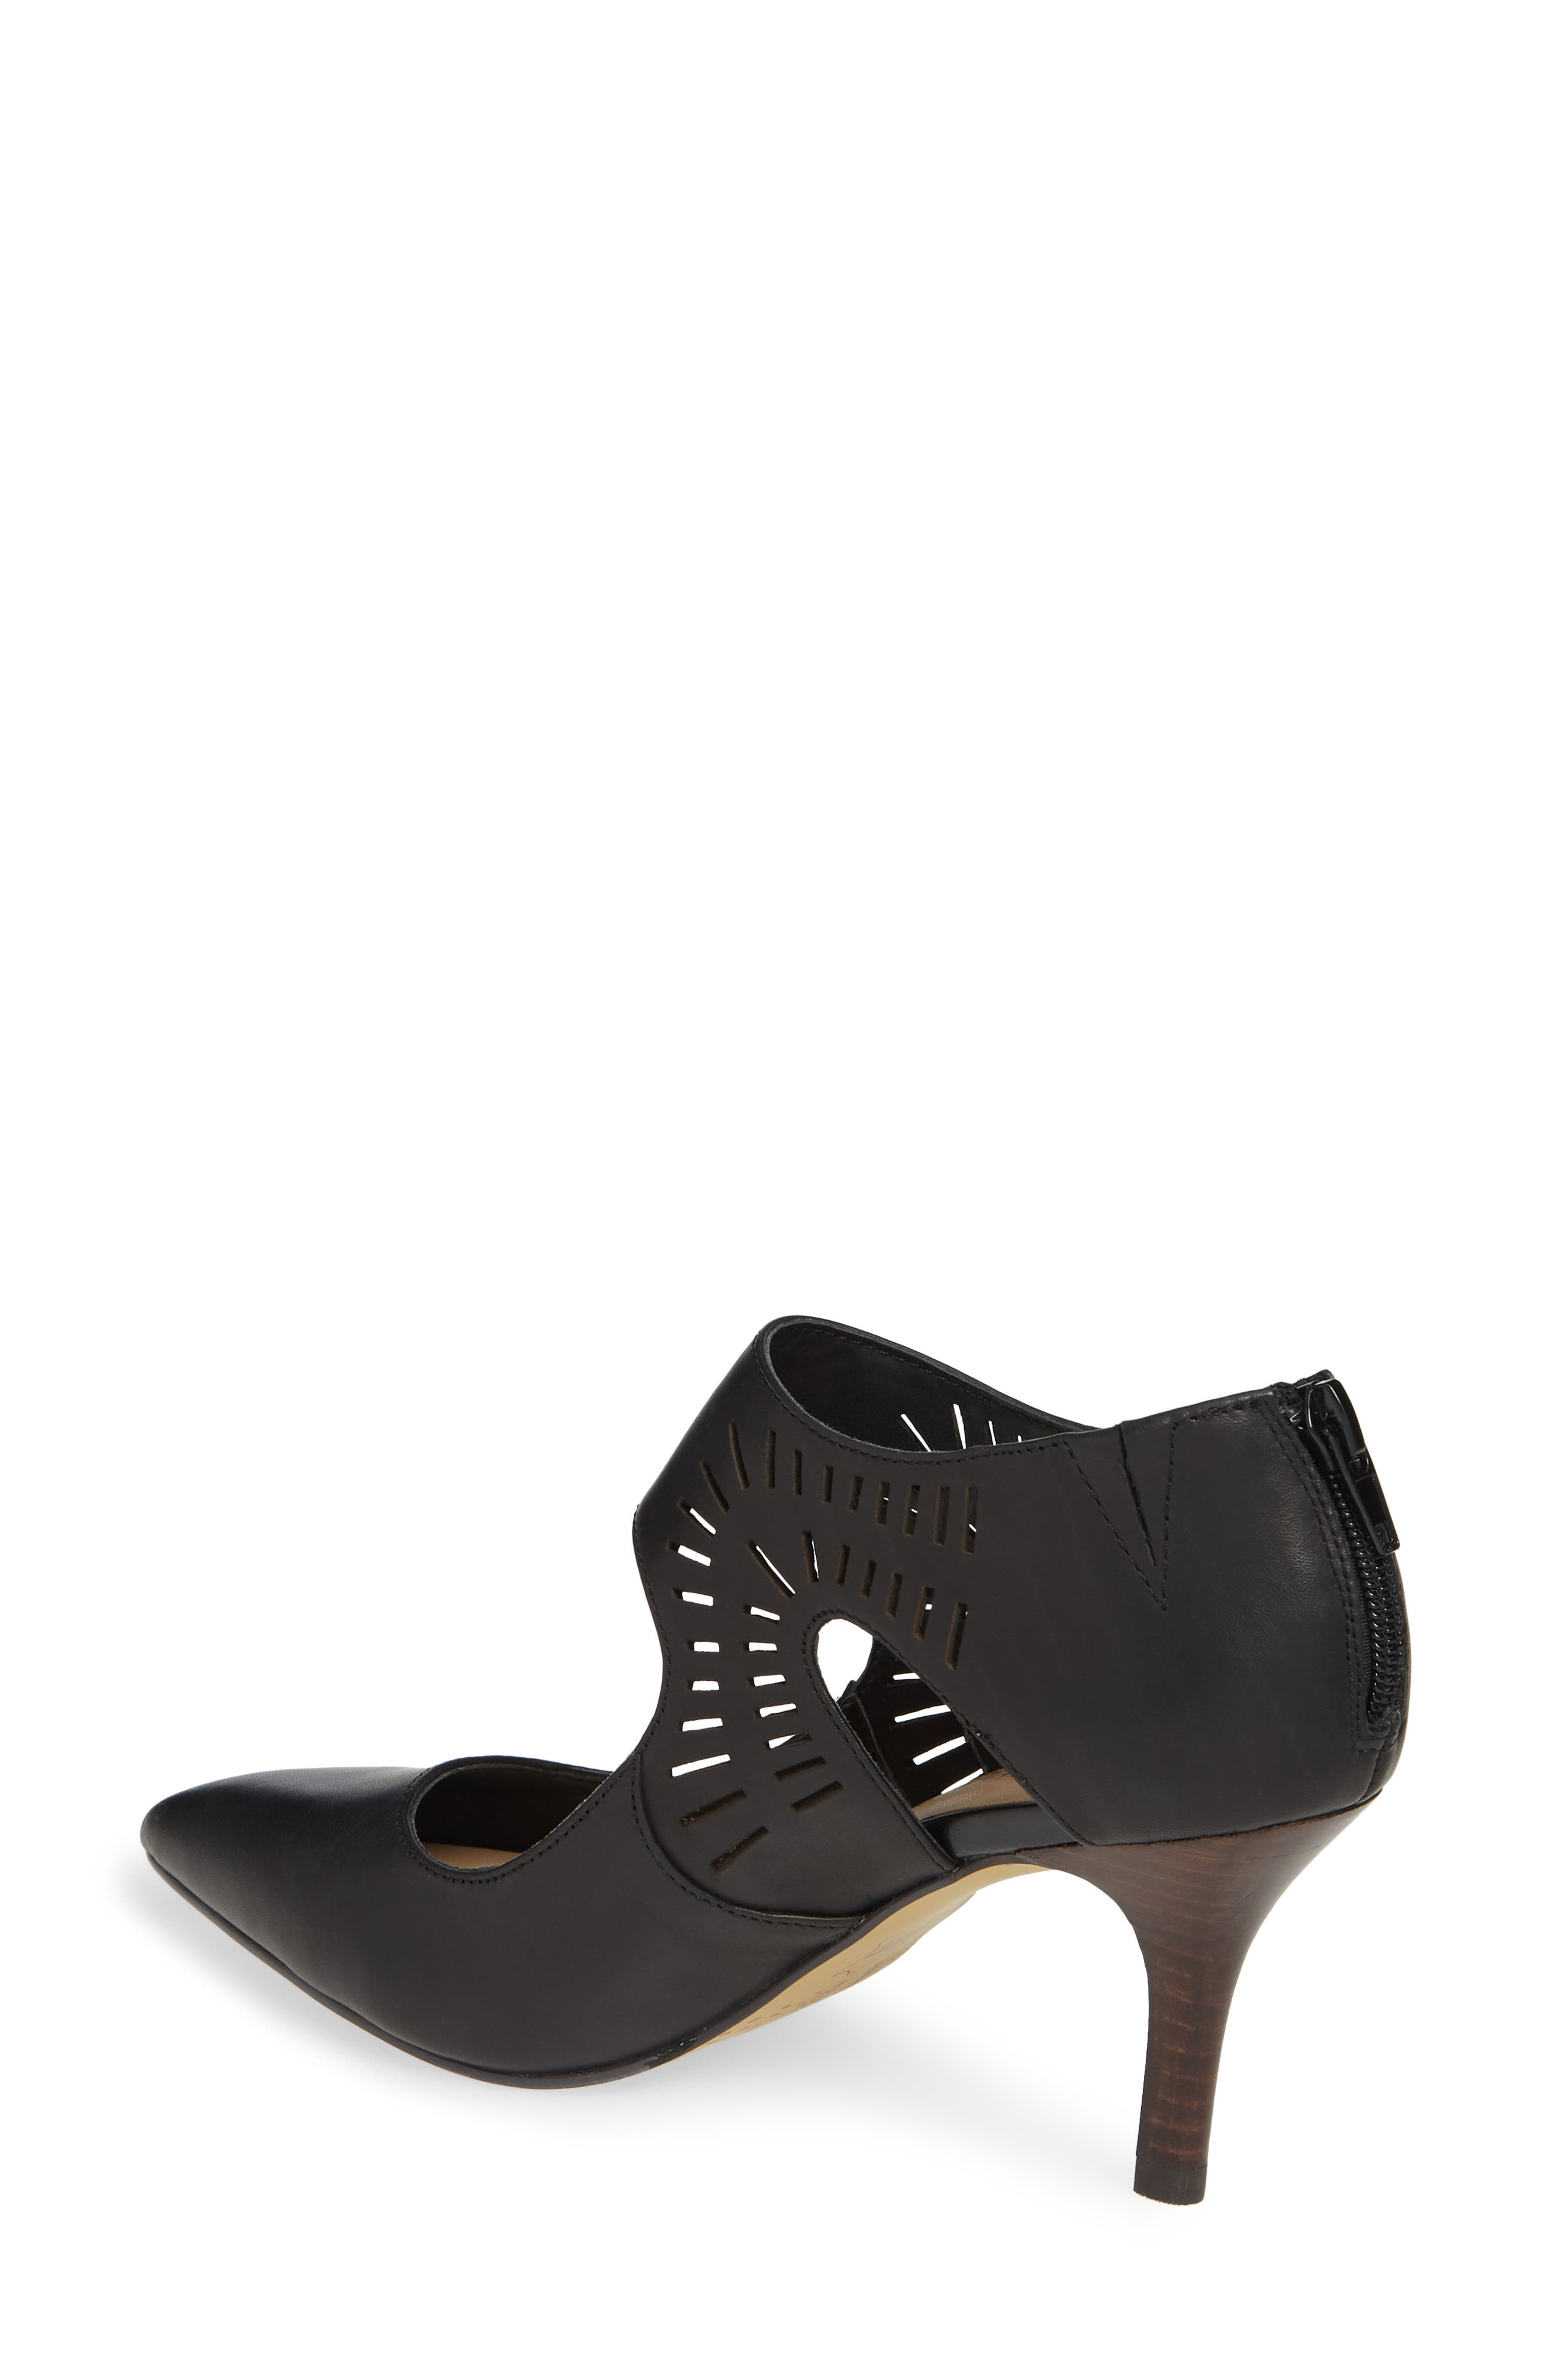 BELLA VITA, Dani Perforated Pump, Alternate thumbnail 2, color, BLACK LEATHER